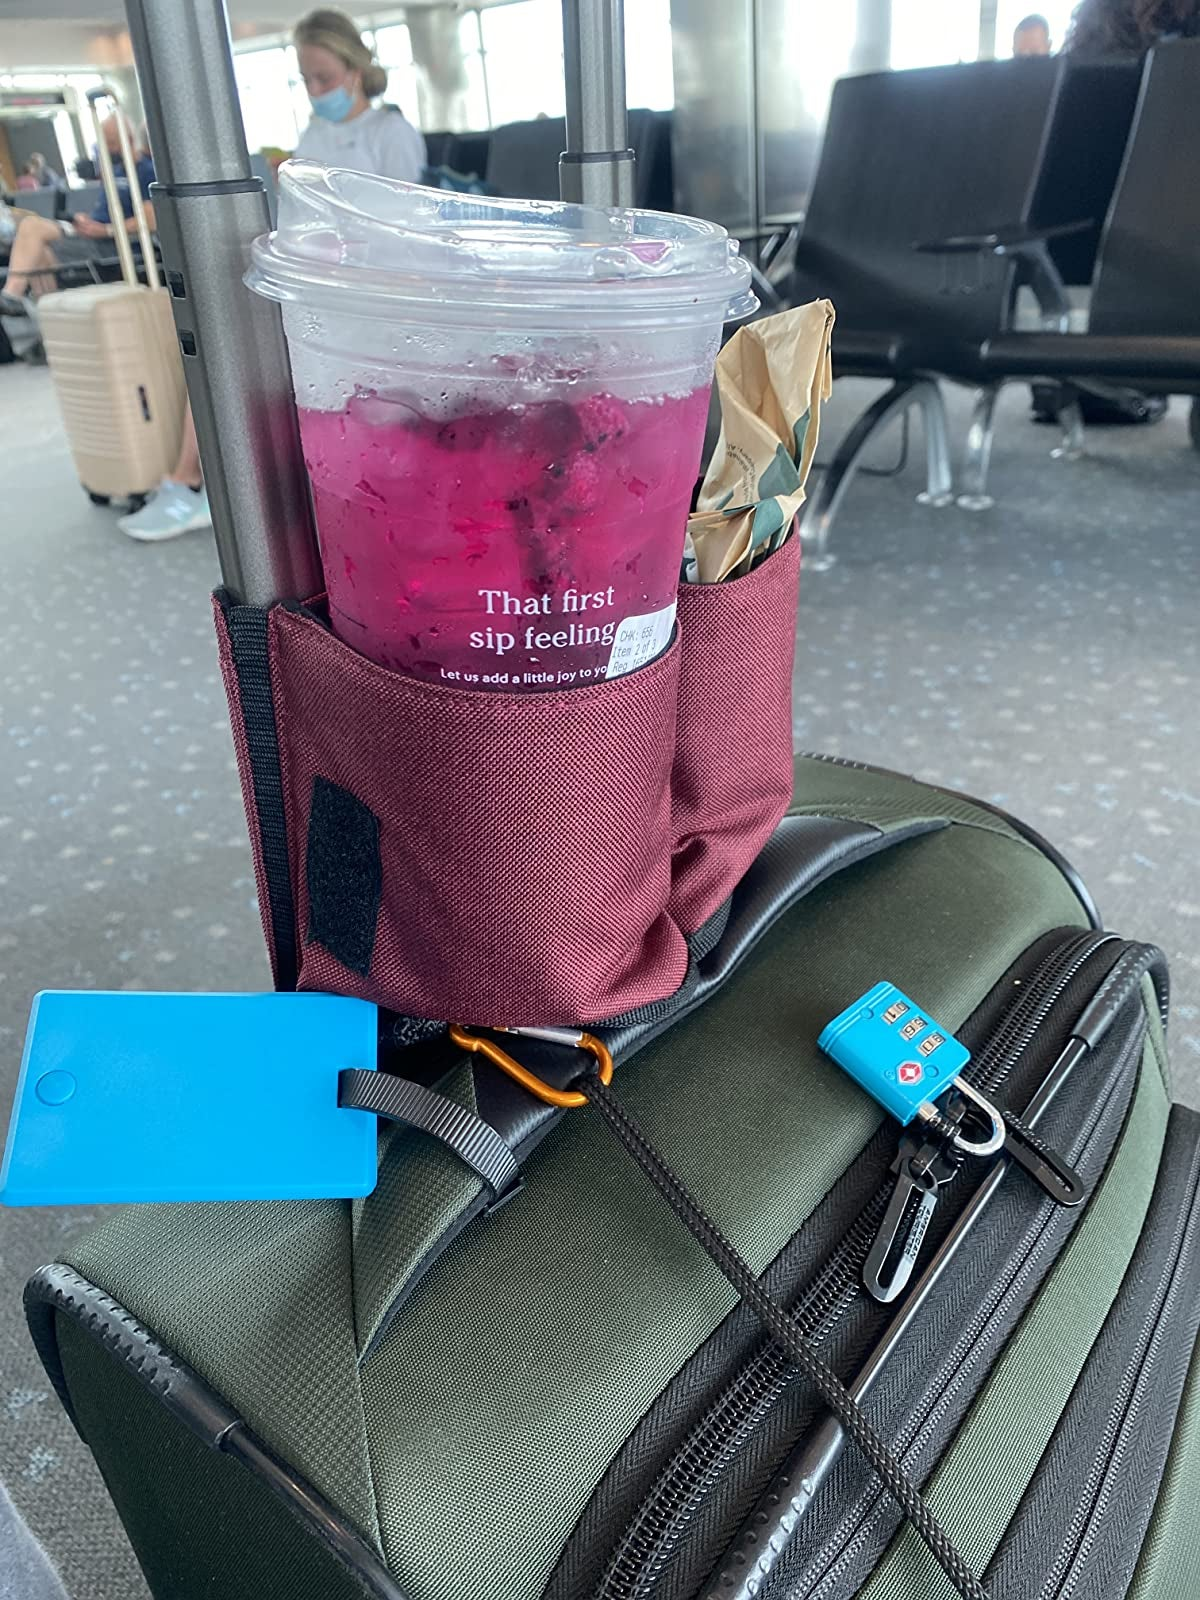 reviewer image of the cup holder attached to a suitcase with a Starbucks drink in it